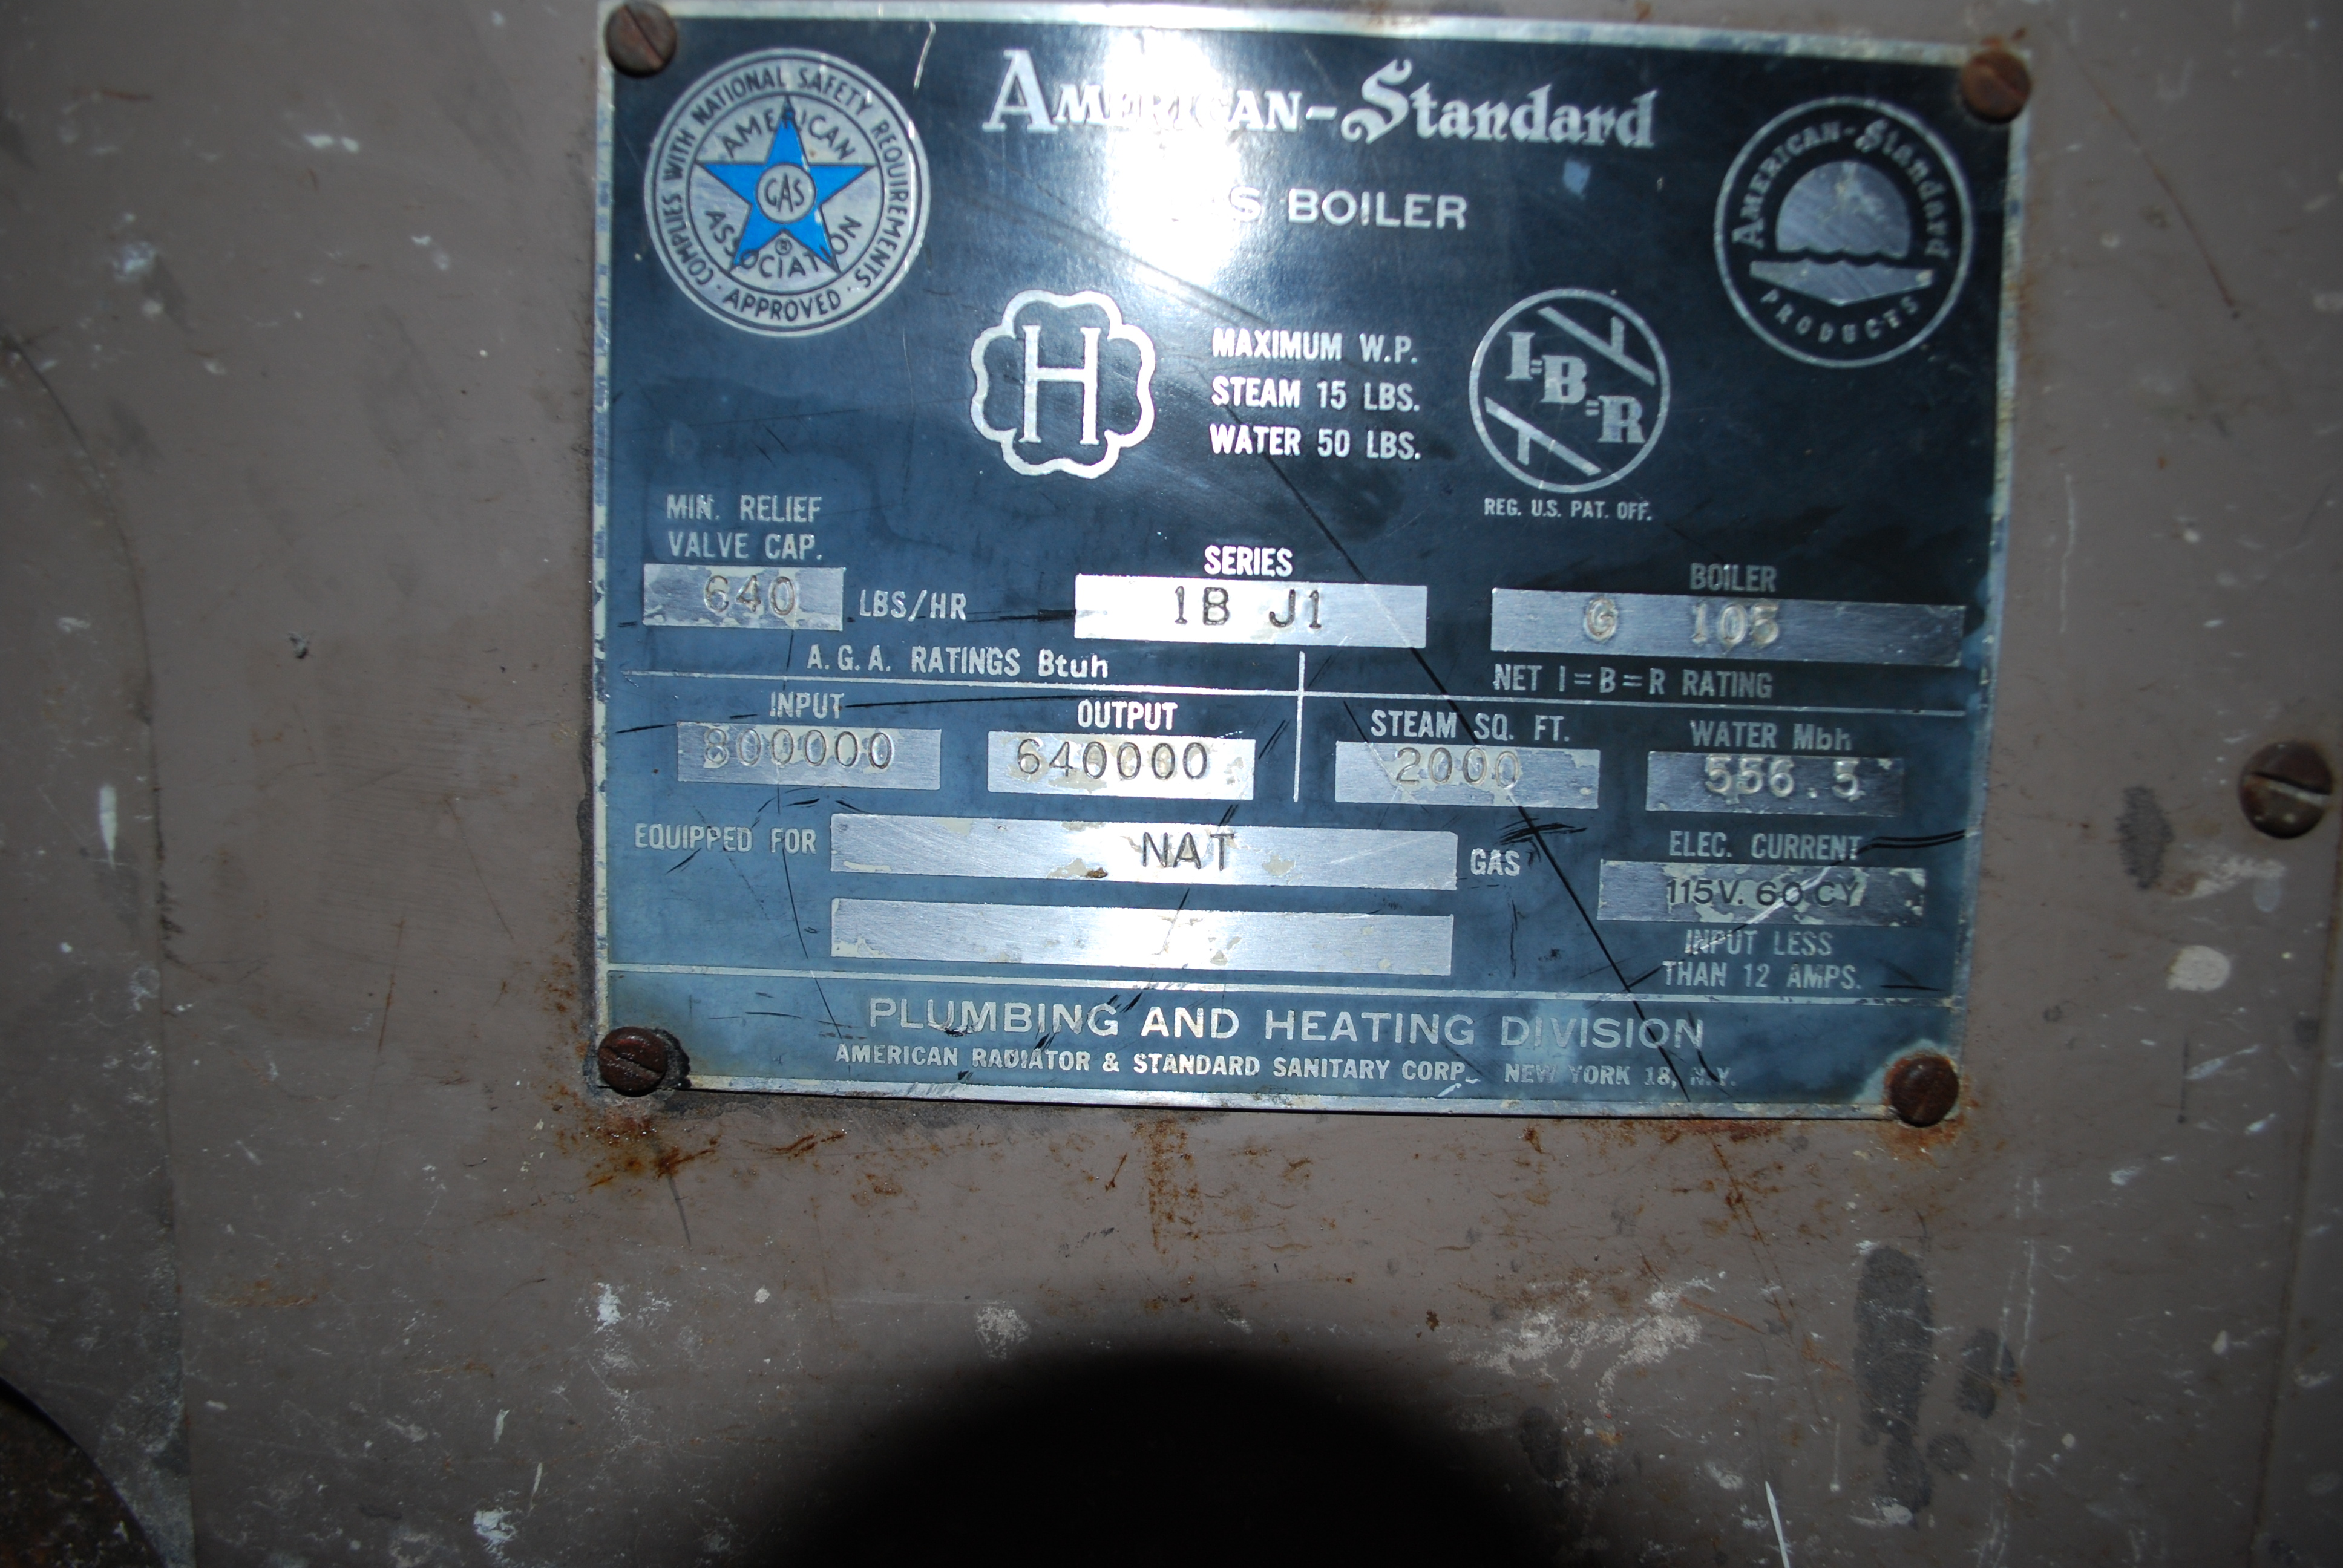 Need User Owners Manual For Old American Standard Boiler